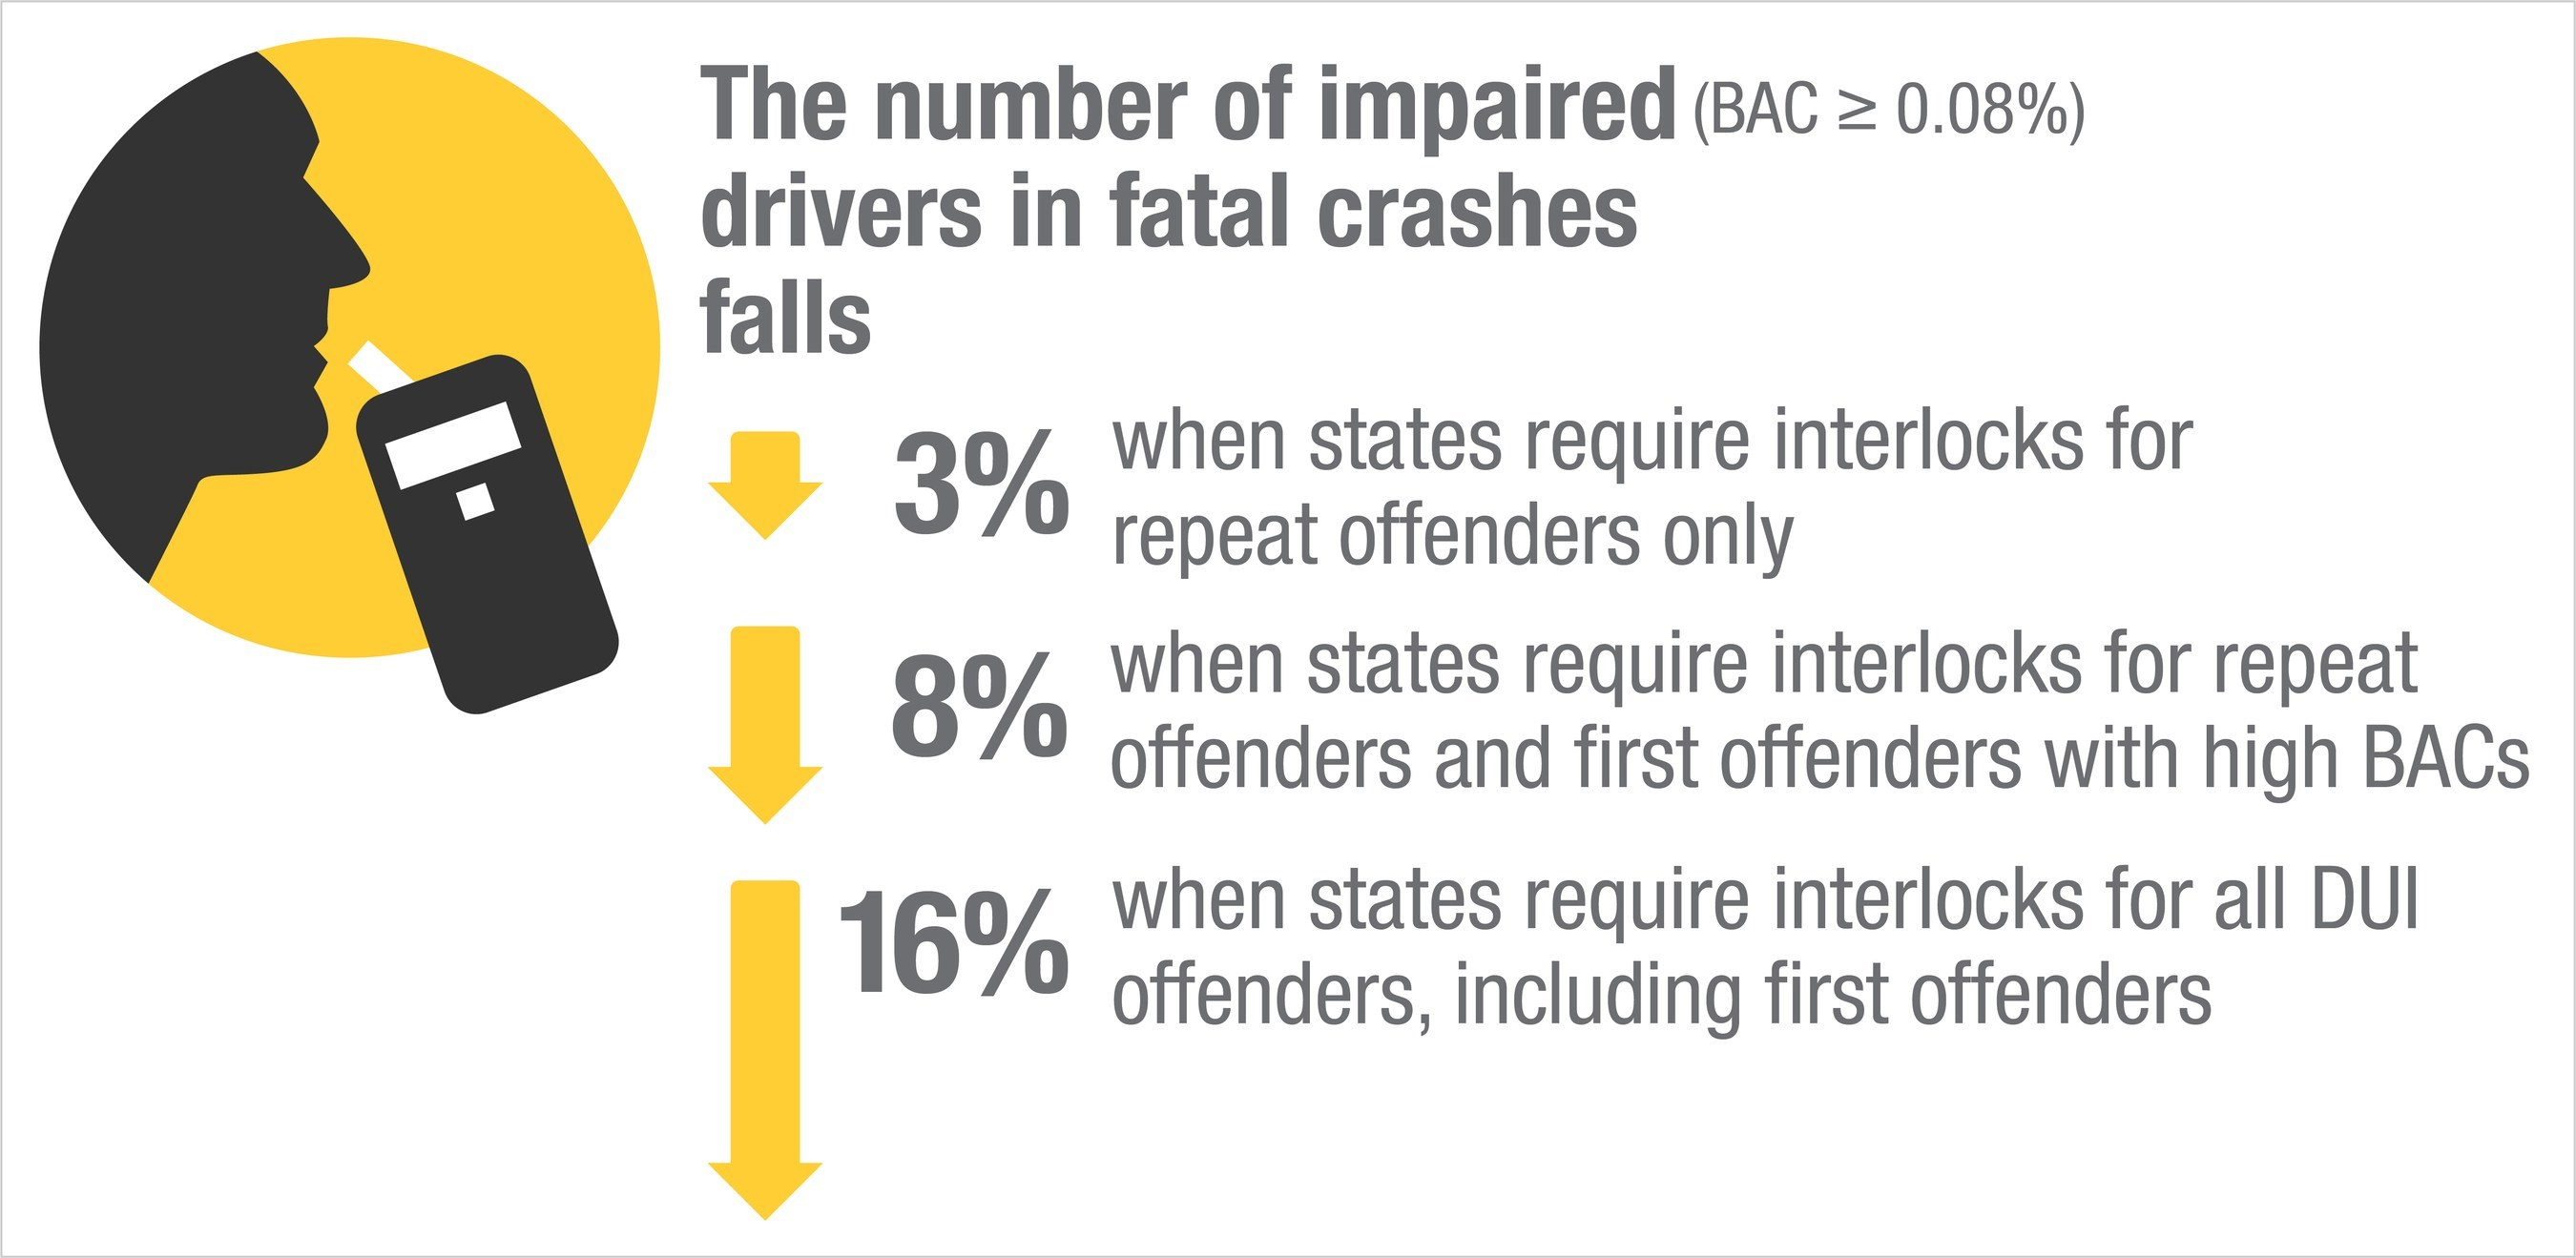 Ignition interlock laws are one of the few recent policy innovations on alcohol-impaired driving that have made a difference.